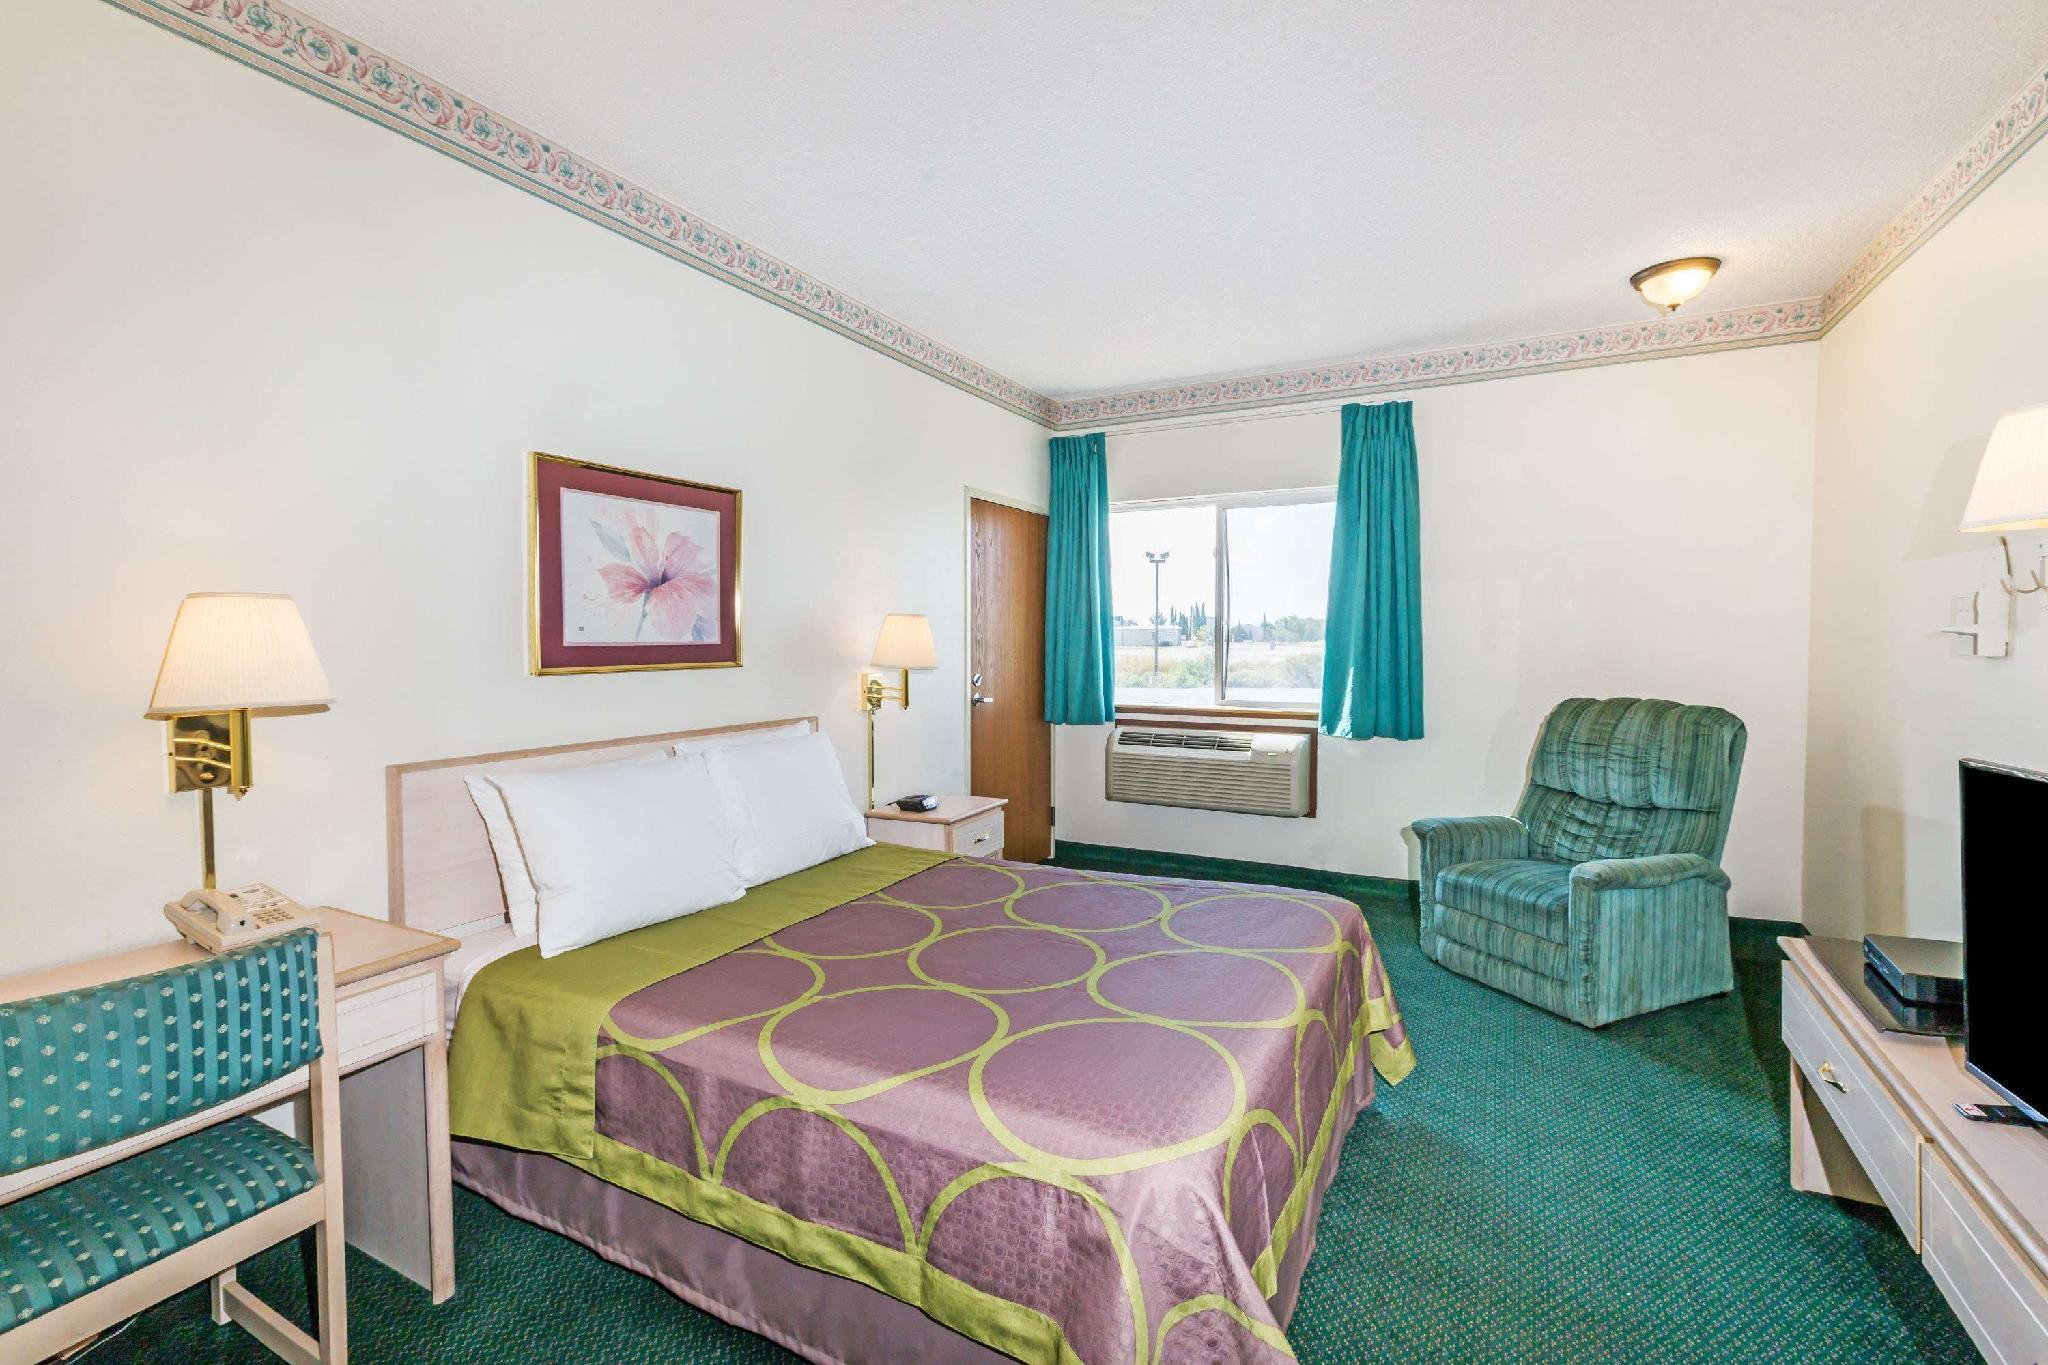 1 Queen Bed, Mobility Accessible Room, Smoking